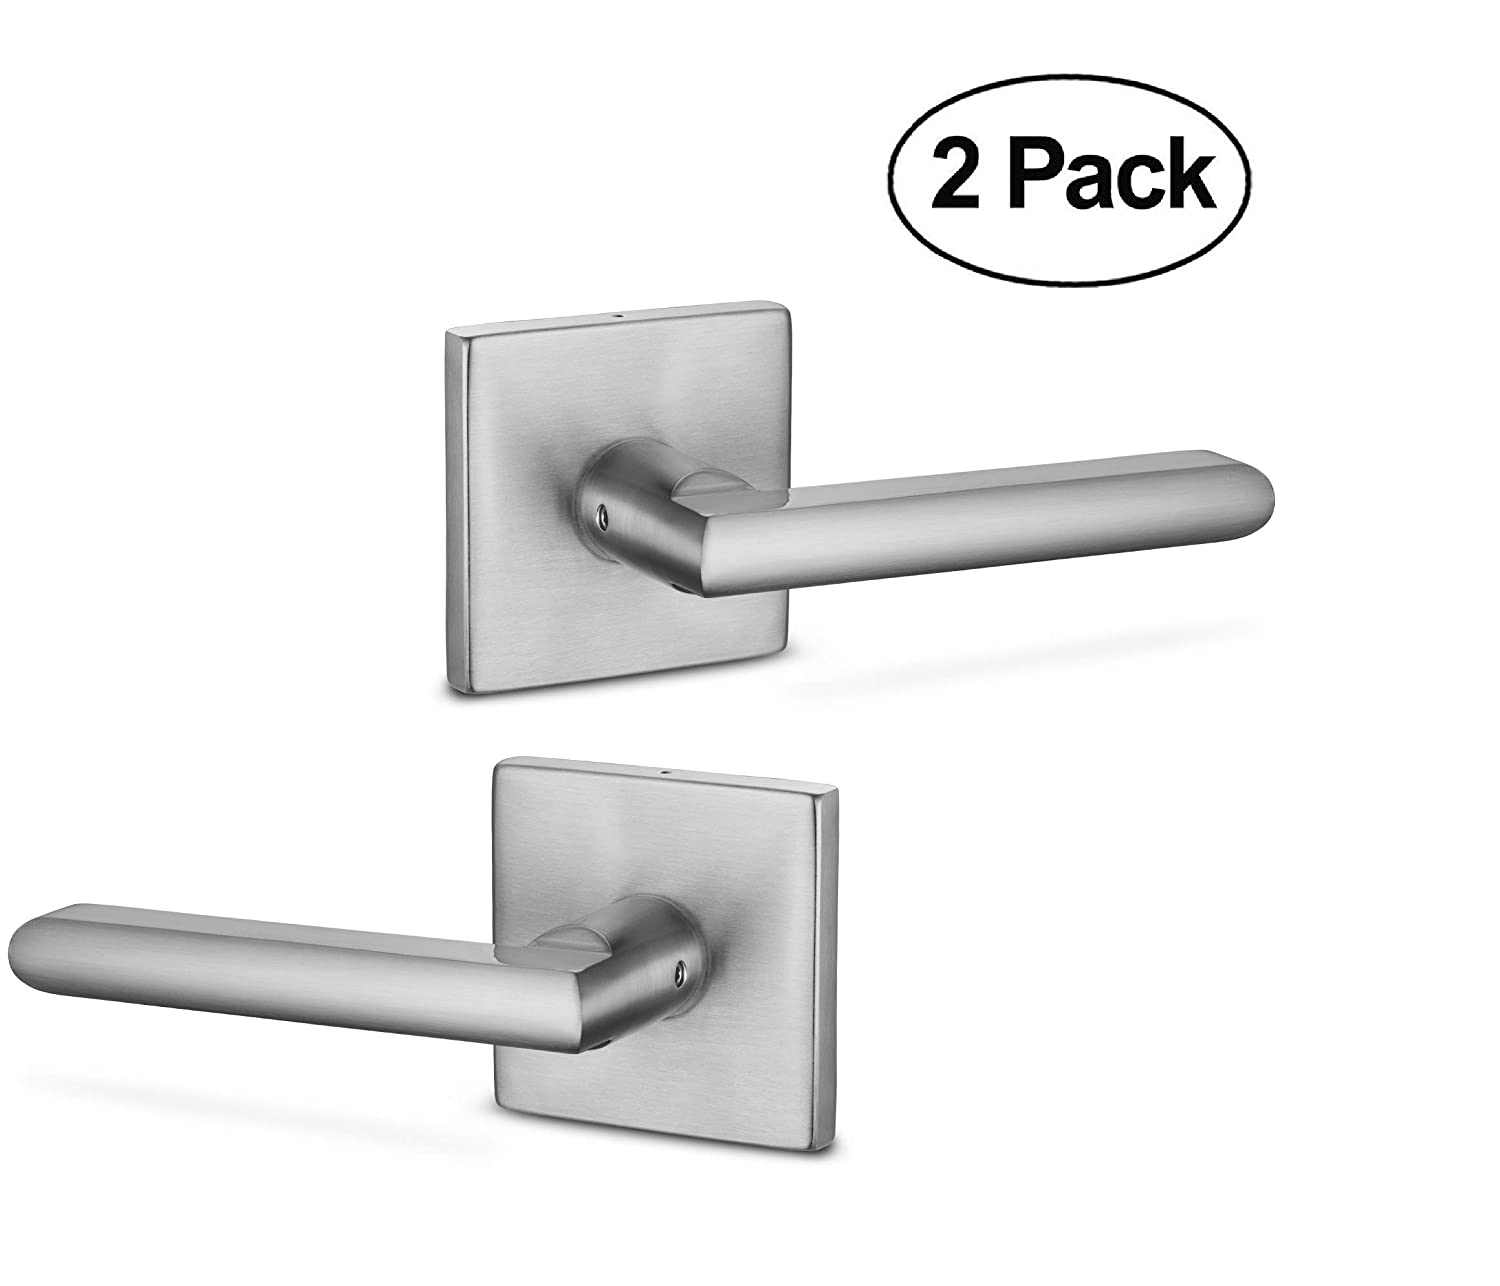 Berlin Modisch Dummy Lever Door Handle Pack of 2 Slim Square Non-Turning Single Side Pull Only Lever Set [for Closet or French Doors] Heavy Duty - Iron Satin Nickel Finish